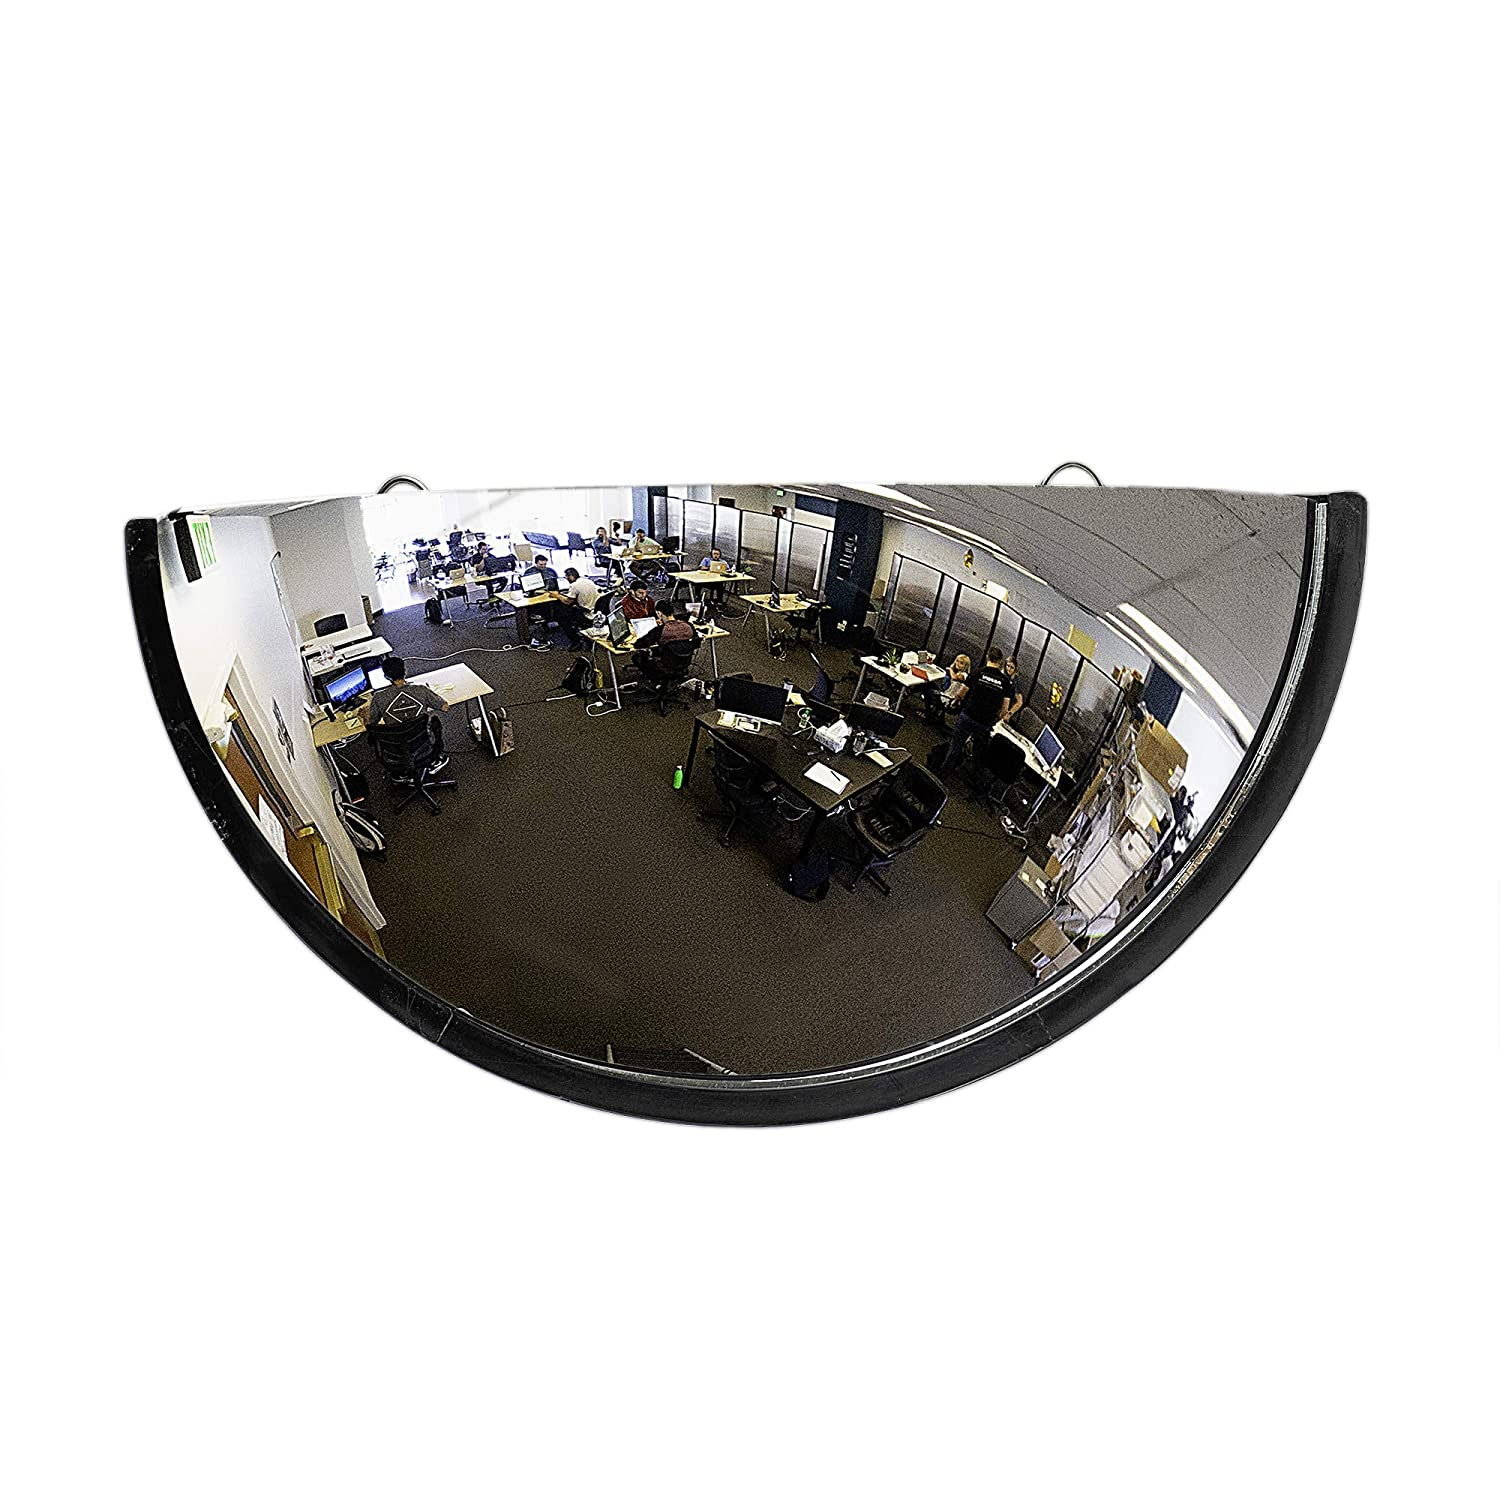 "18"" Acrylic Bubble Half Dome Mirror with Black Rim, Round Indoor Security Mirror for Driveway Safety Spots, Outdoor Warehouse Side View, Circular Wall Mirror for Office Use - Vision Metalizers"